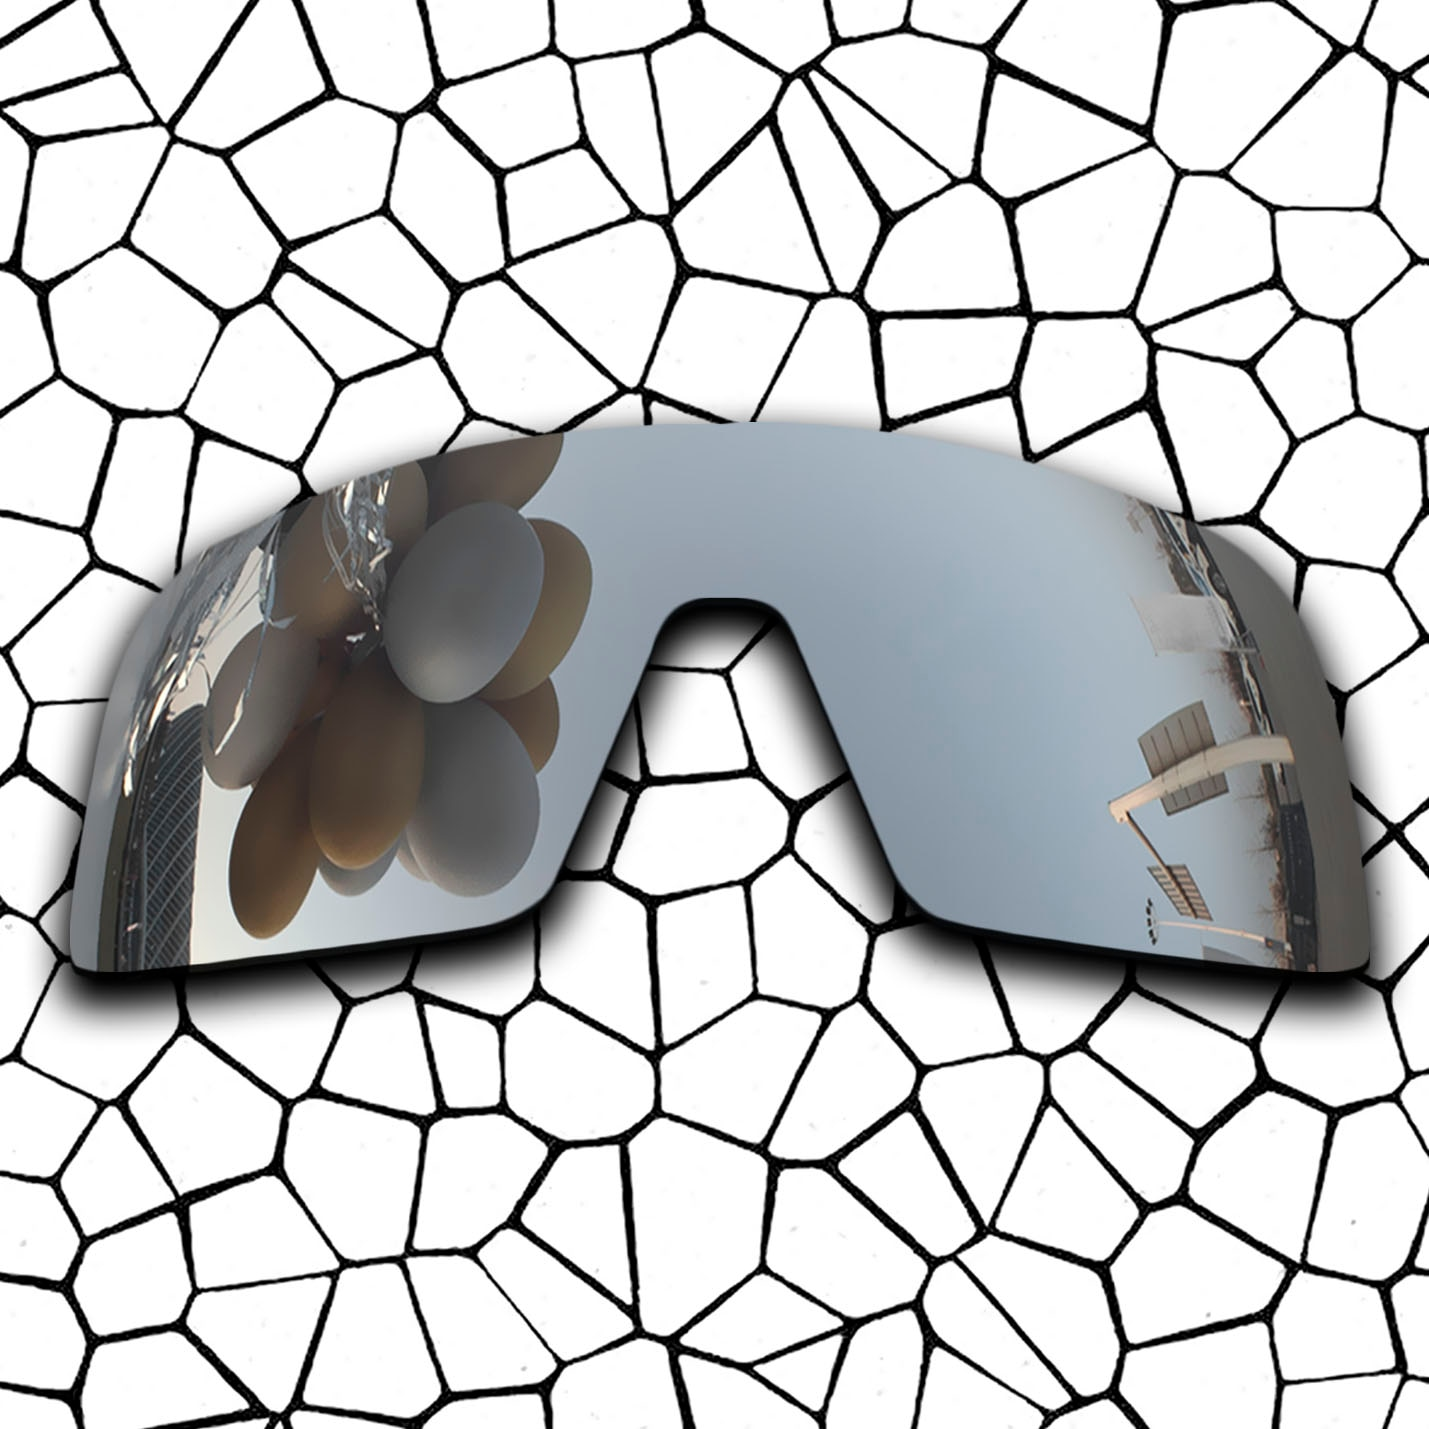 Polarized Replacement Lense For-Oakley Sutro Sunglasses Frame True Color Mirrored Coating - Chrome Color Options